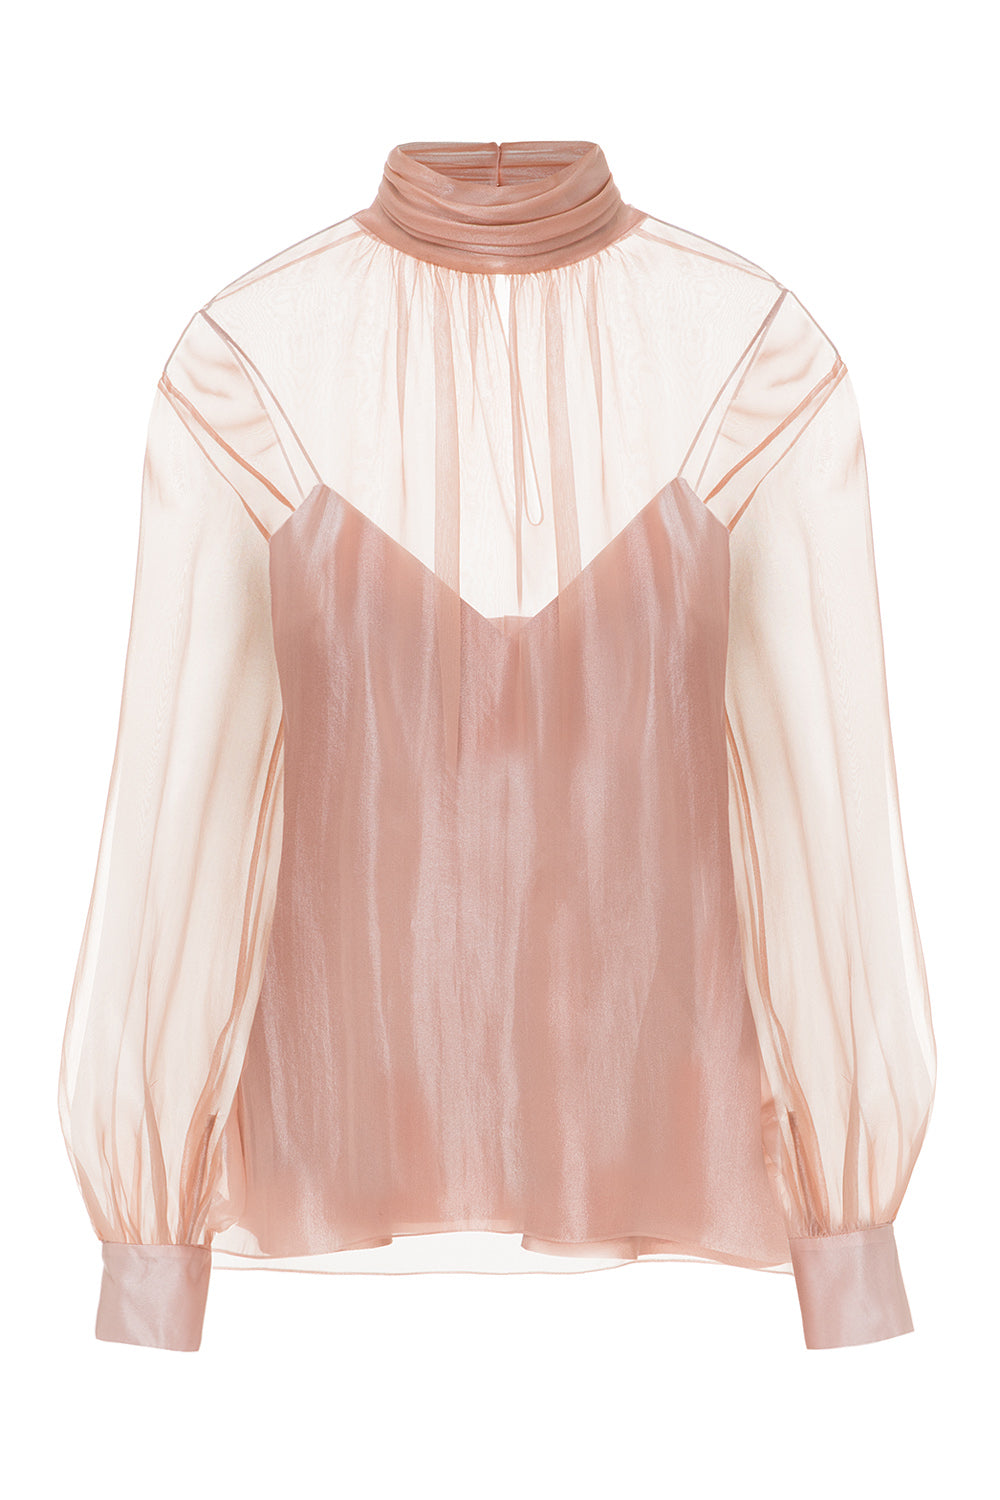 Translucent pink blouse